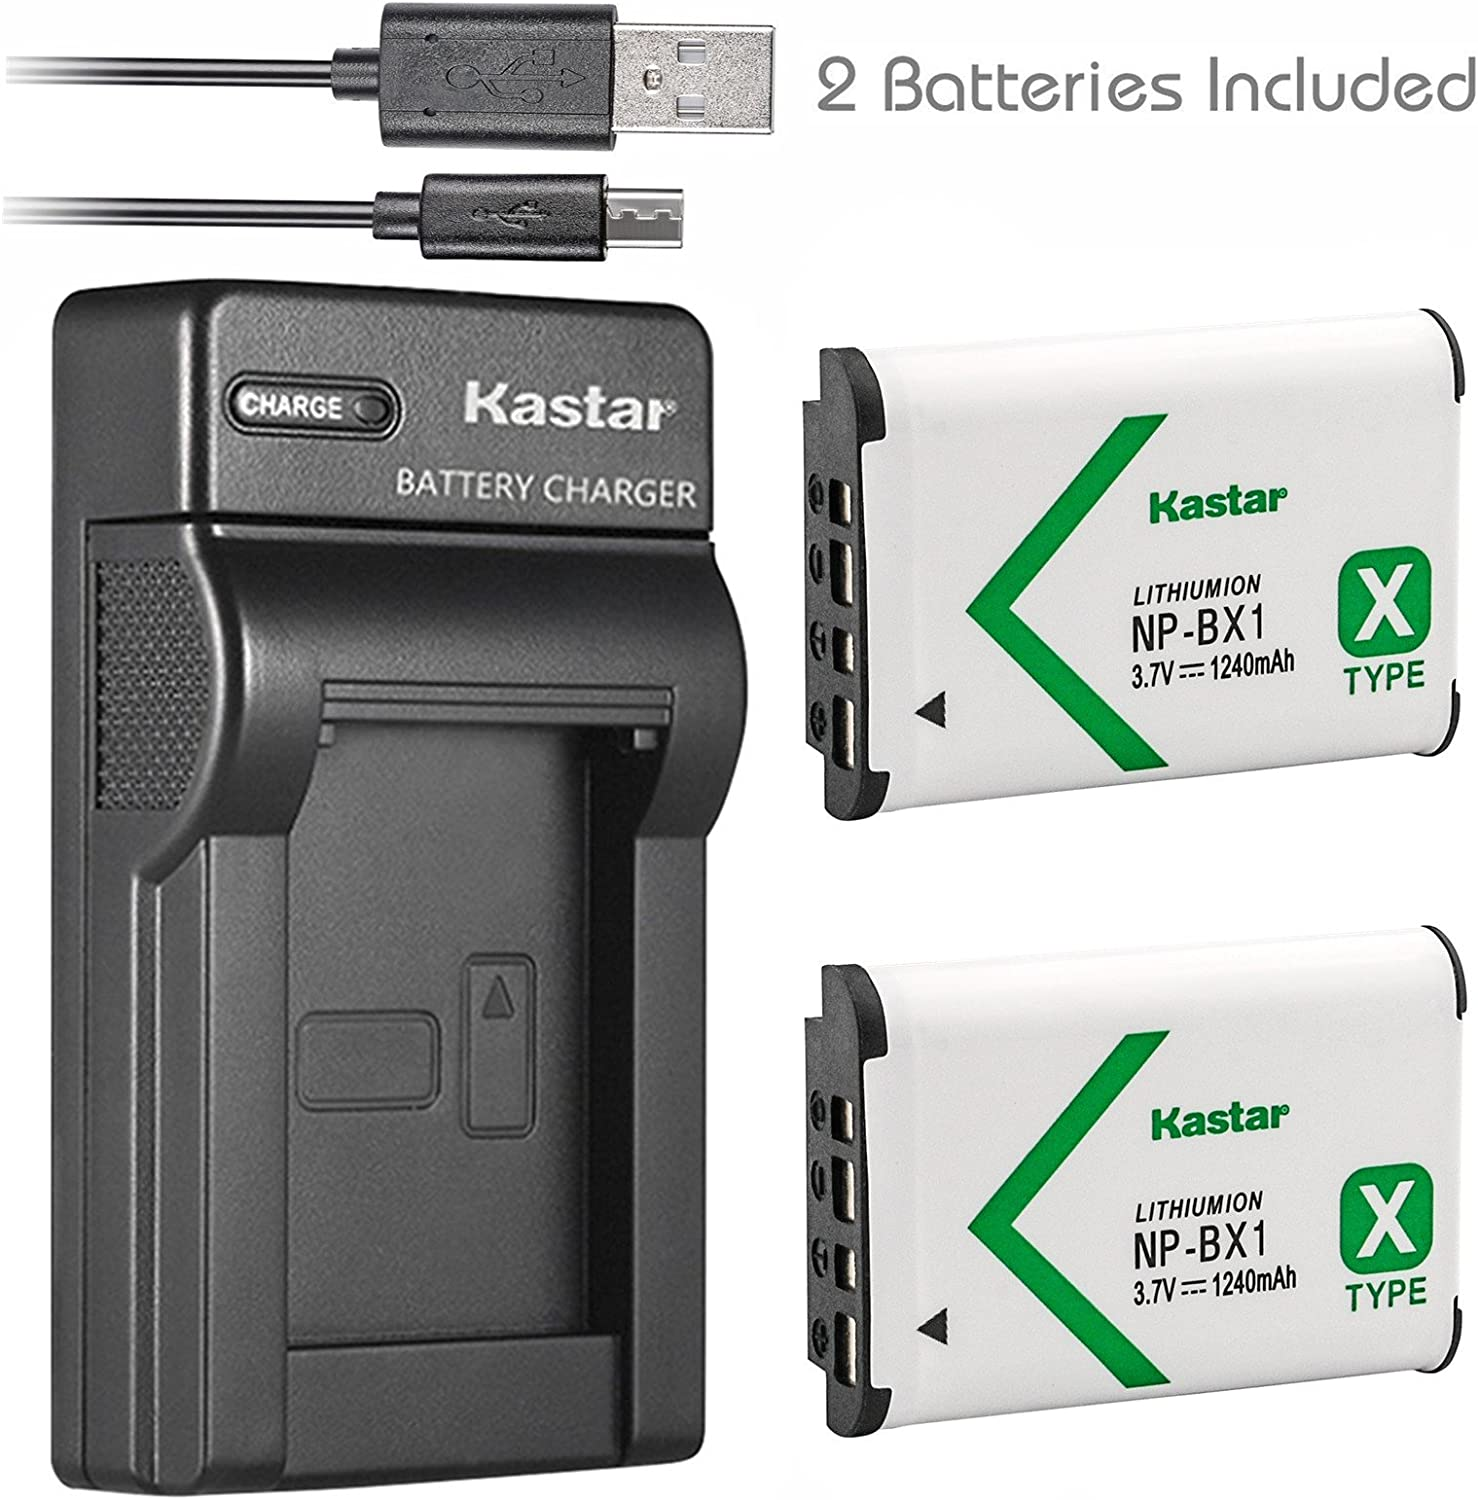 DSLR Triple USB Charger NP-BX1 Battery for Sony DSC-RX100 HX300 RX1 HDR-AS15